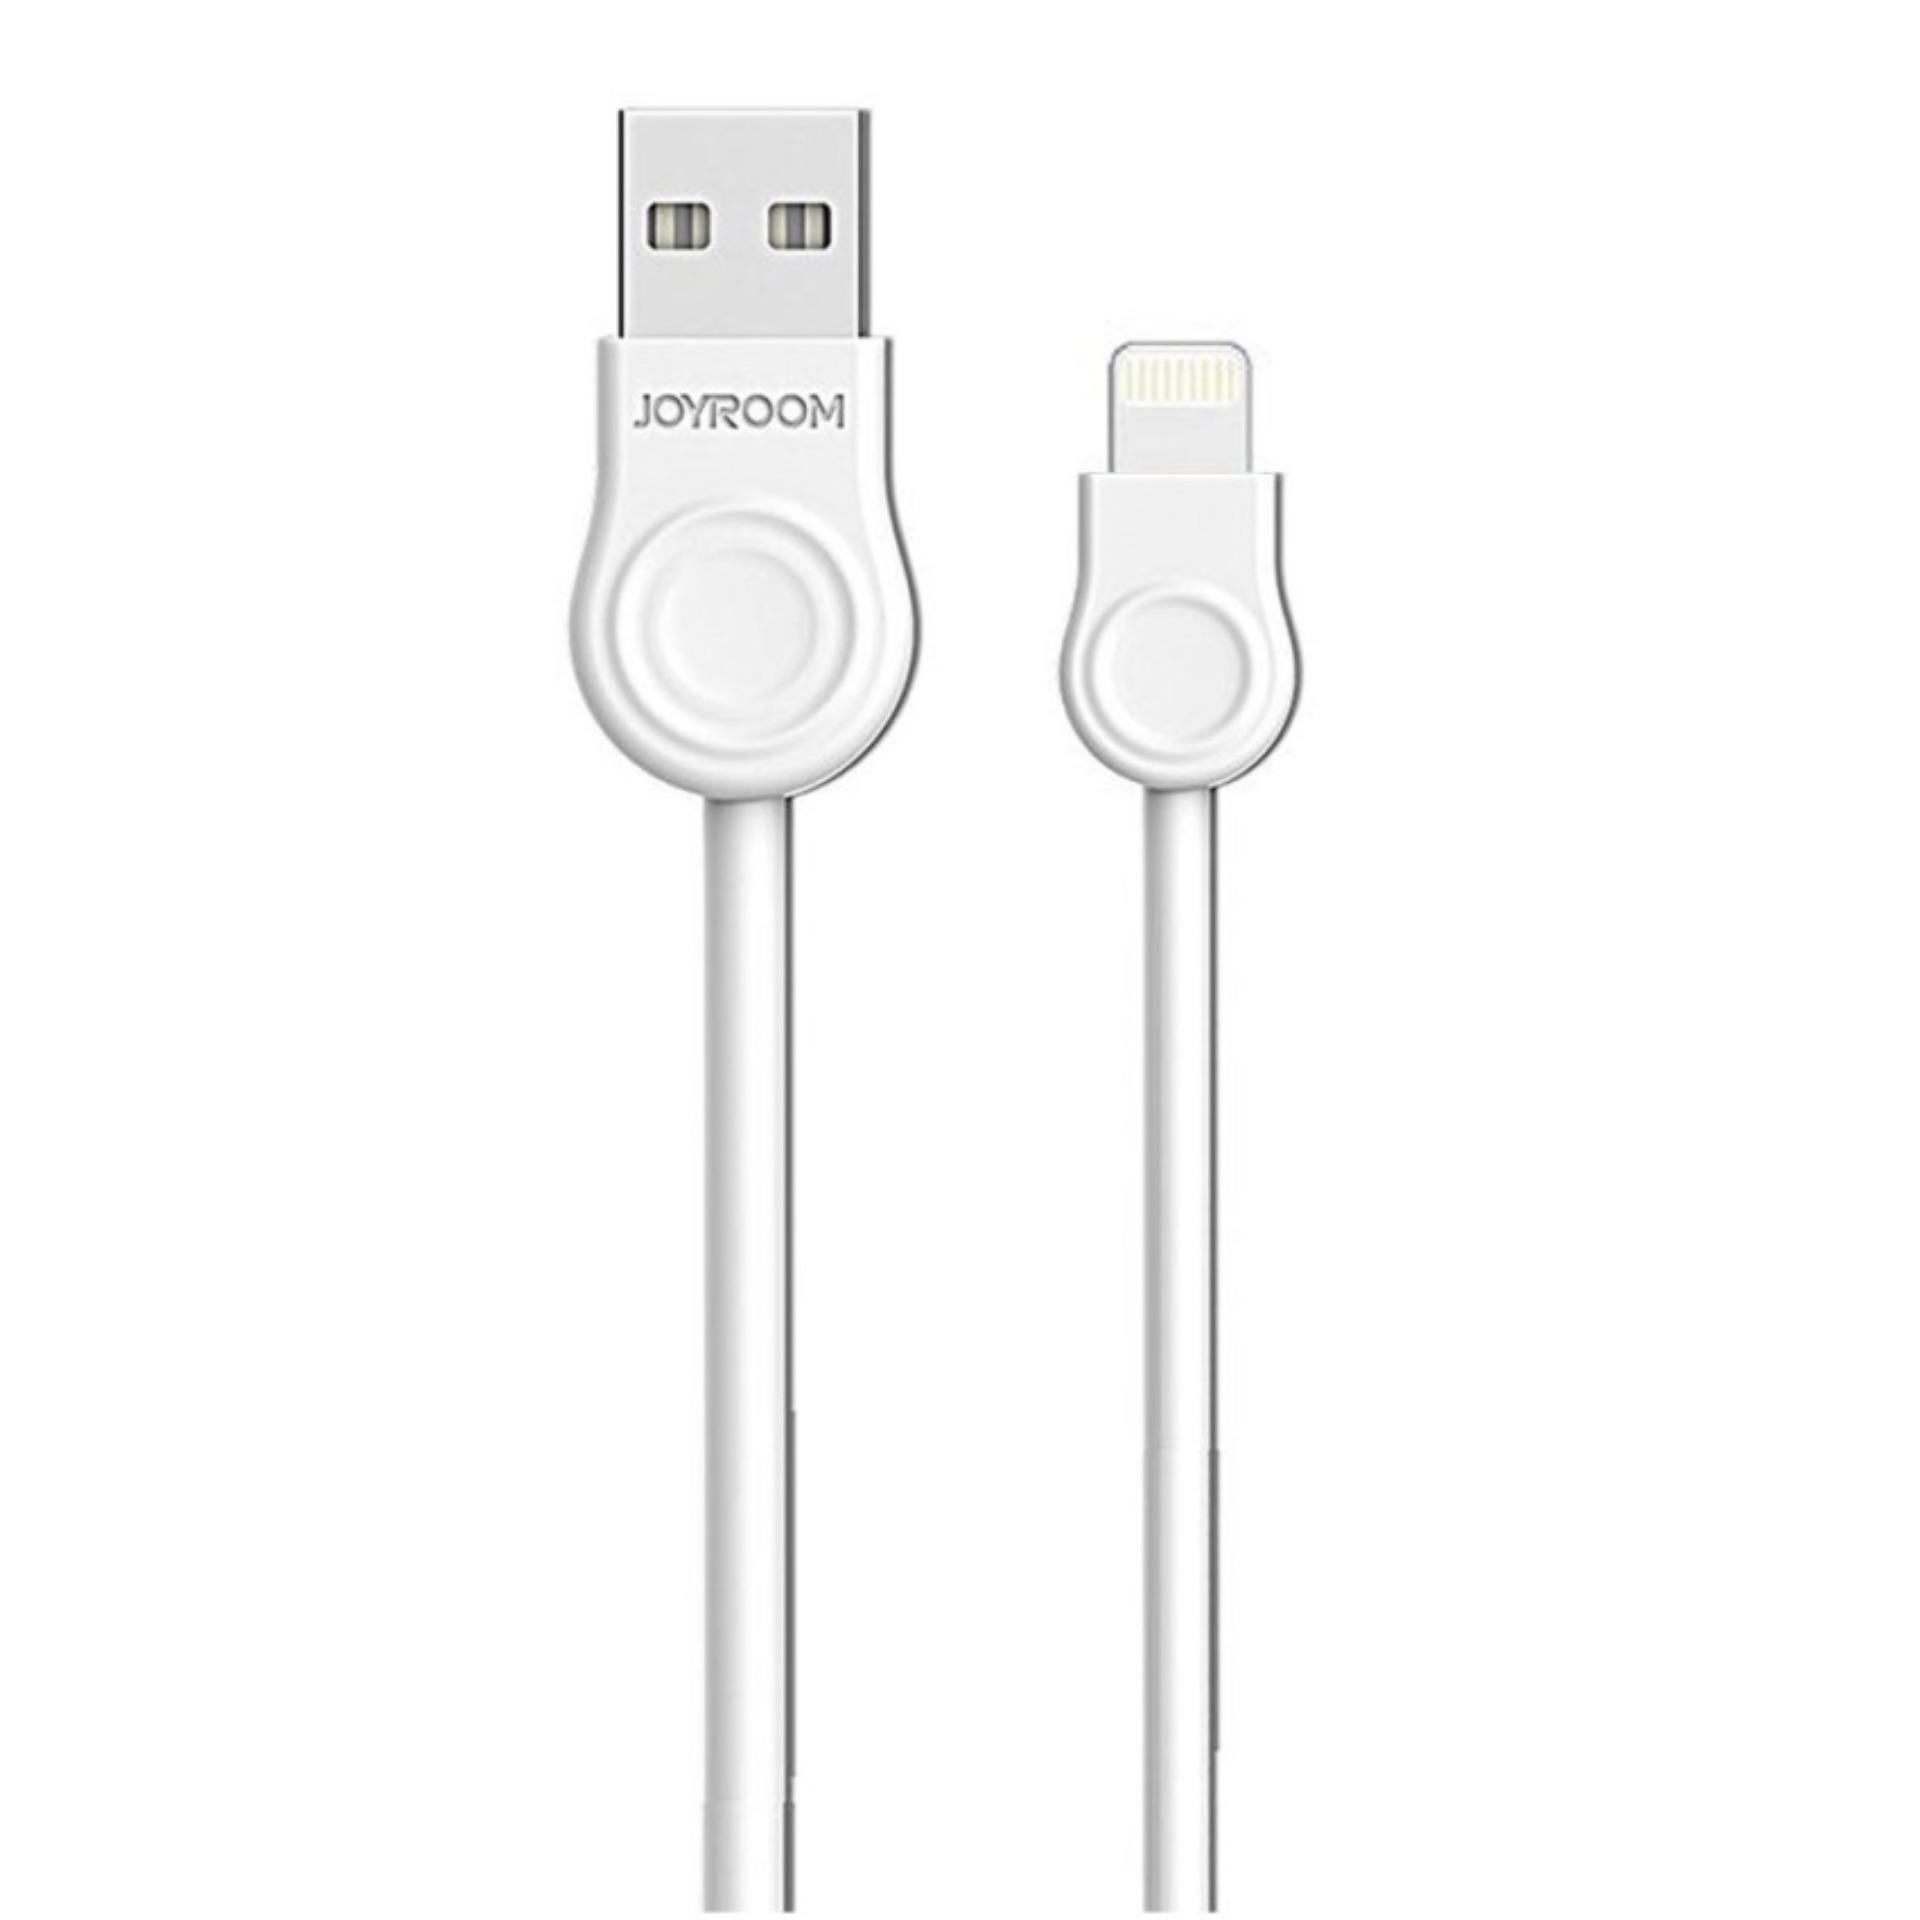 Joyroom USB Cable For iPhone 7 ios Charger Data Cable For iPhone 7 .